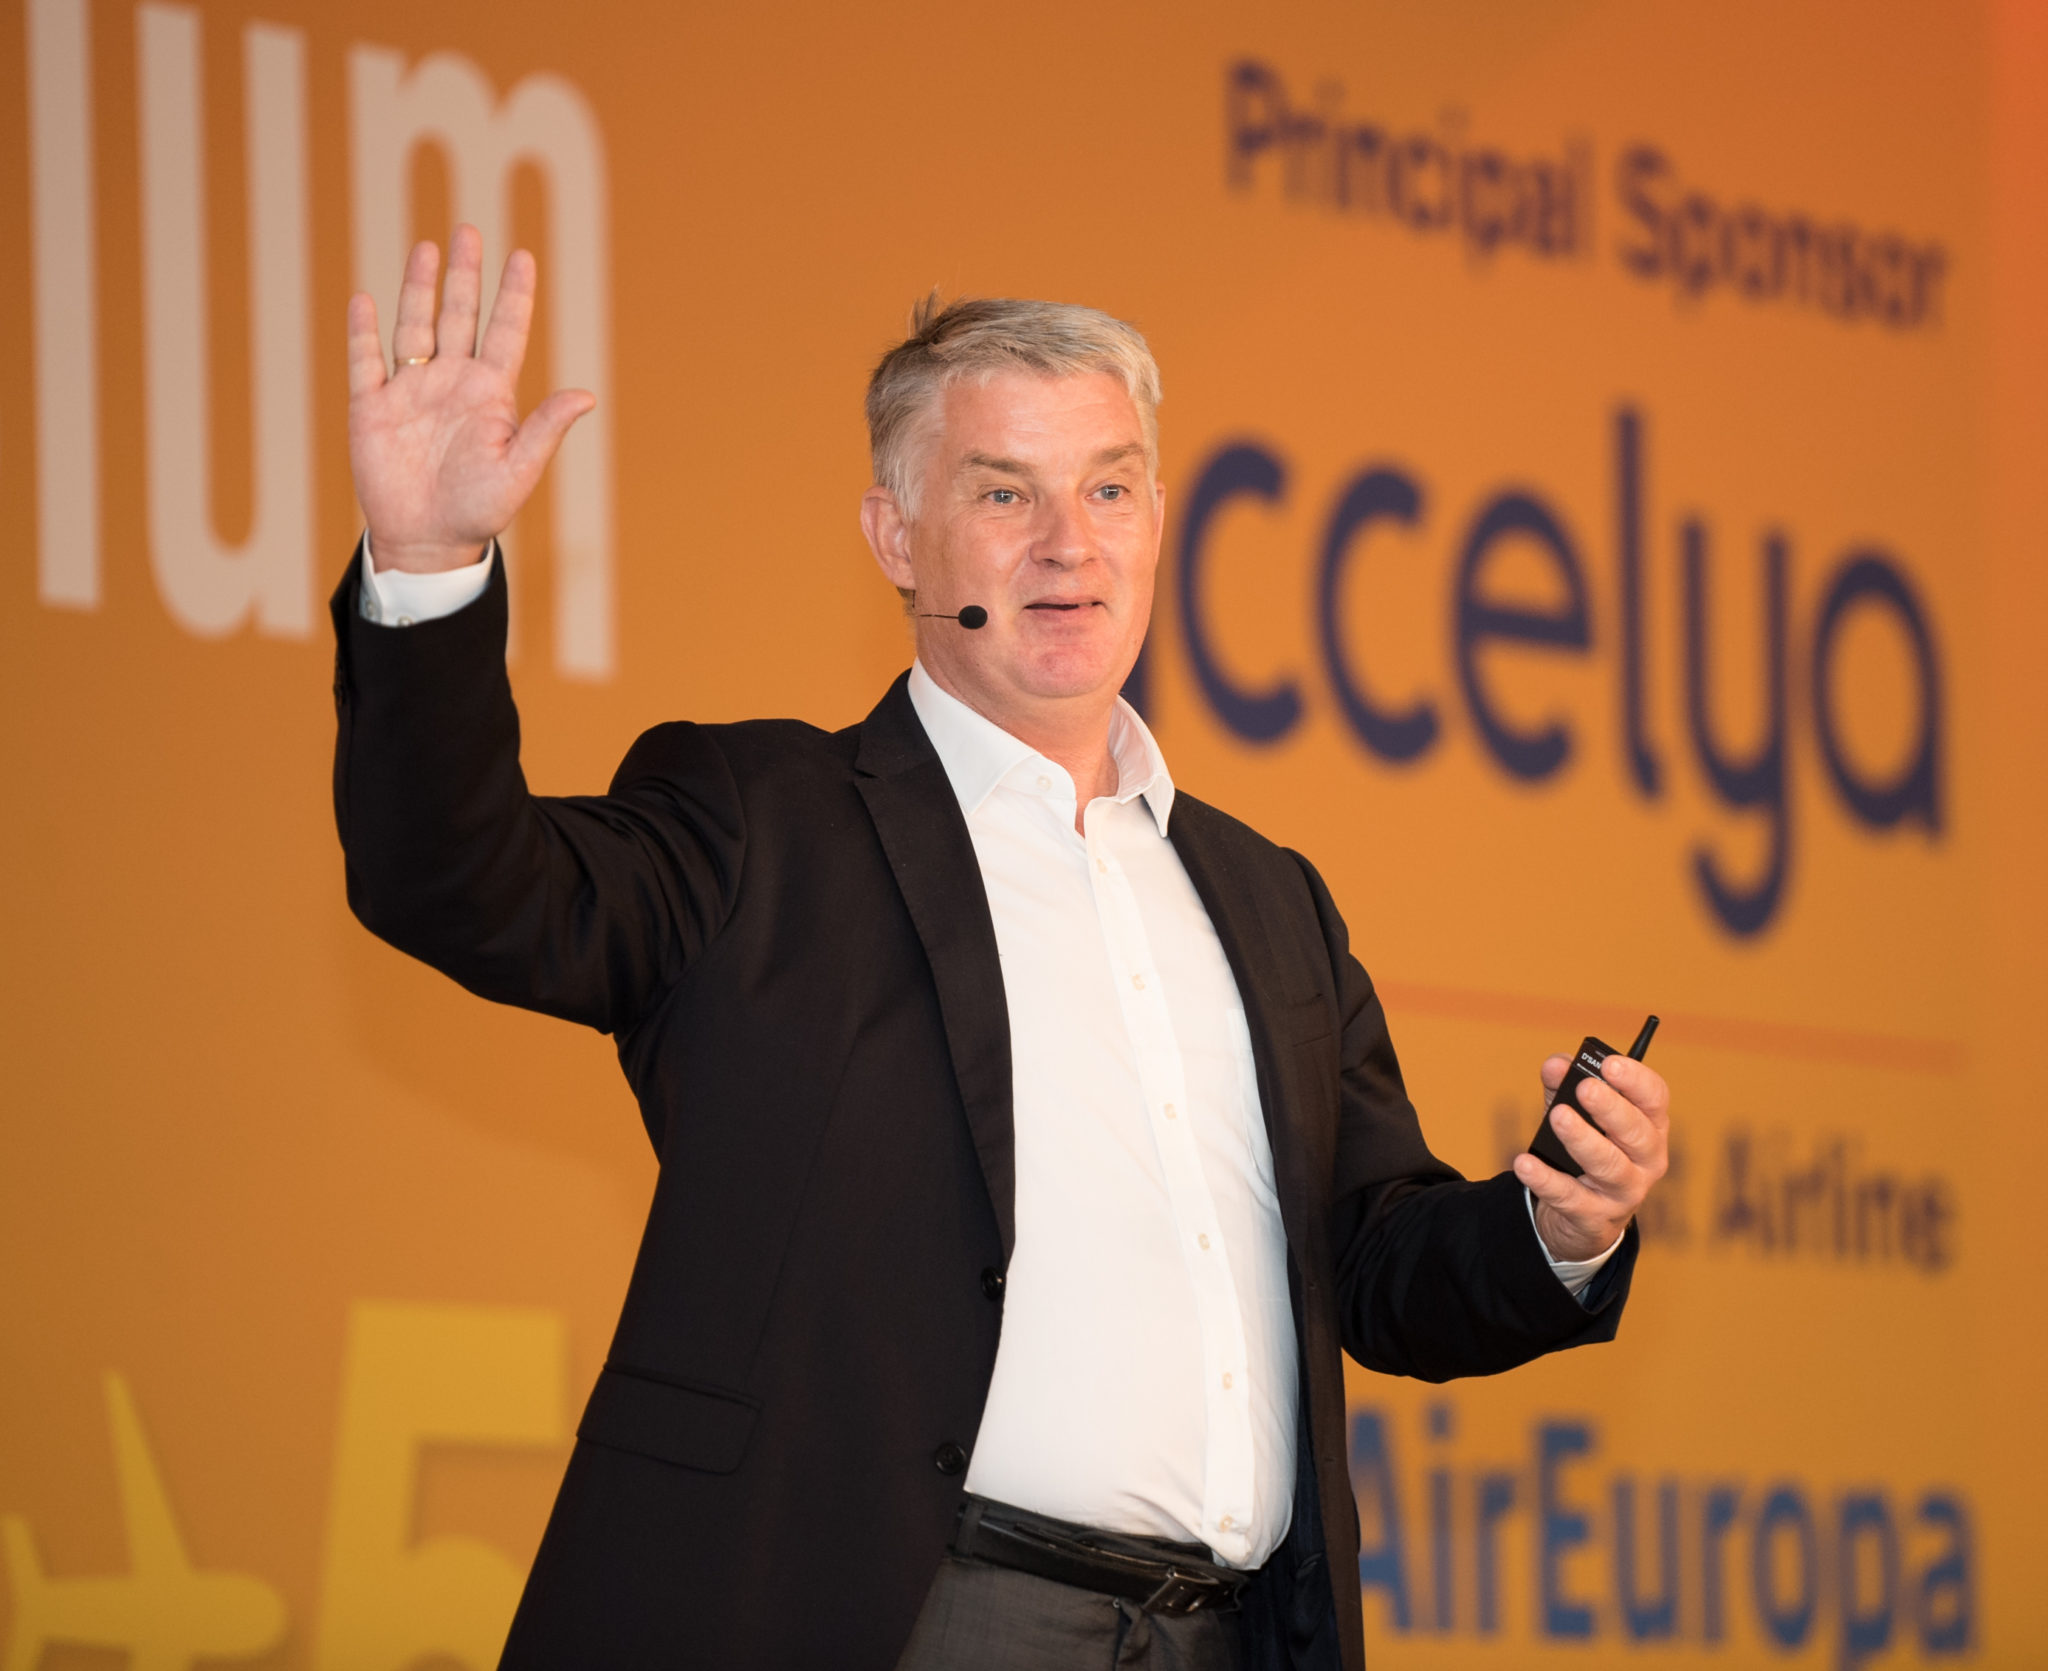 Book a Keynote Speaker on creating winning corporate cultures